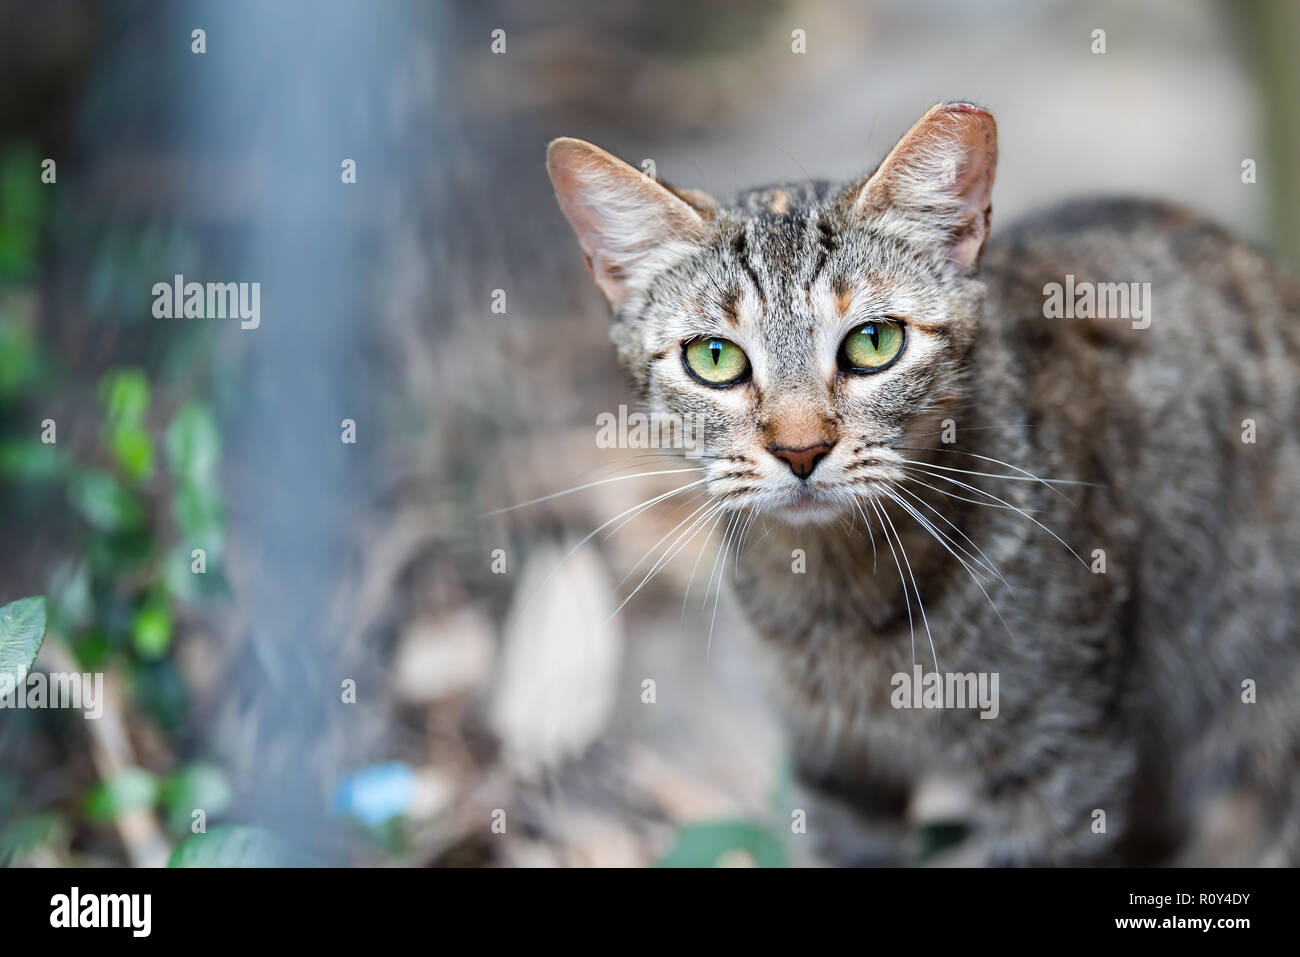 Stray tabby cat with shiny green eyes closeup on sidewalk streets in New Orleans, Louisiana hungry - Stock Image